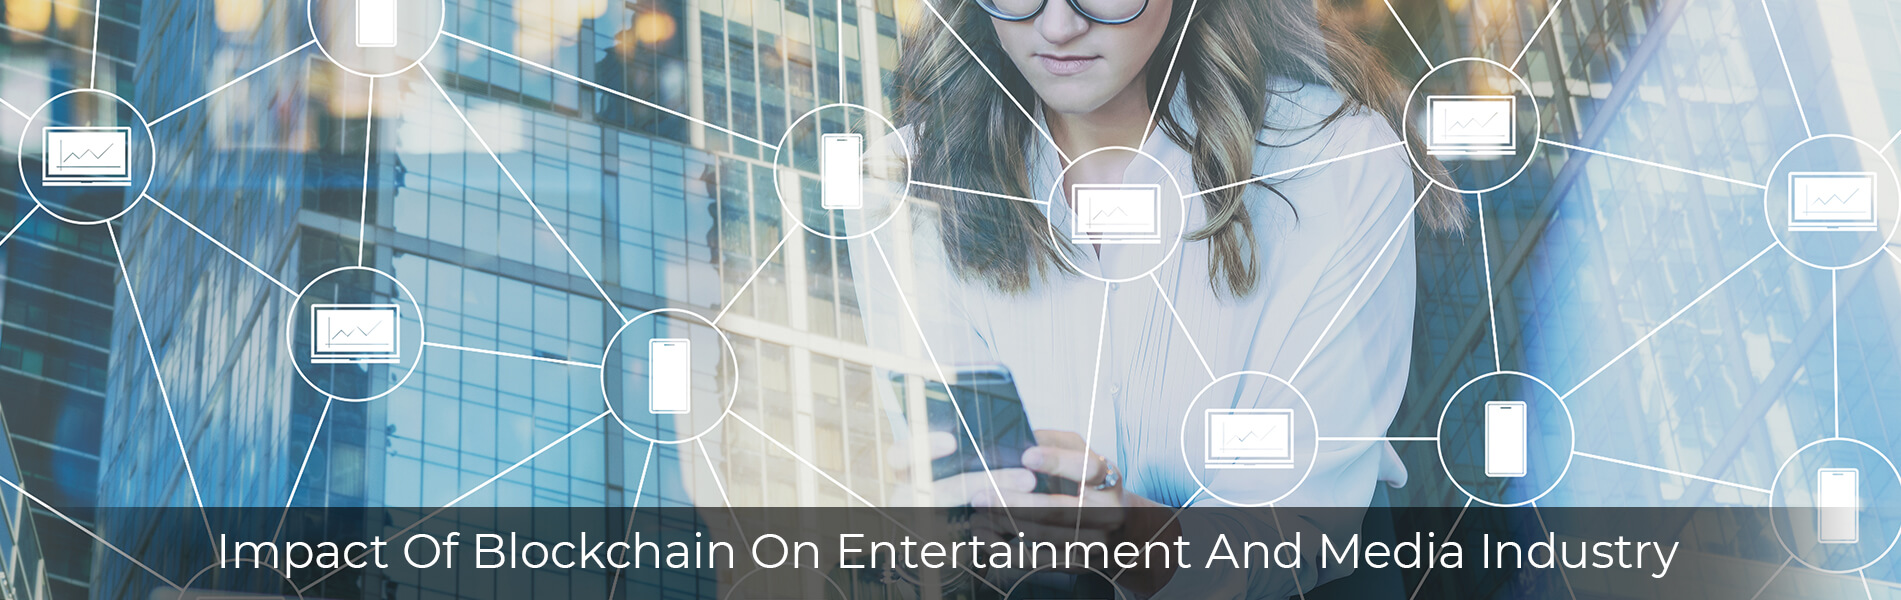 Repercussions Of Blockchain On Entertainment And Media Industry